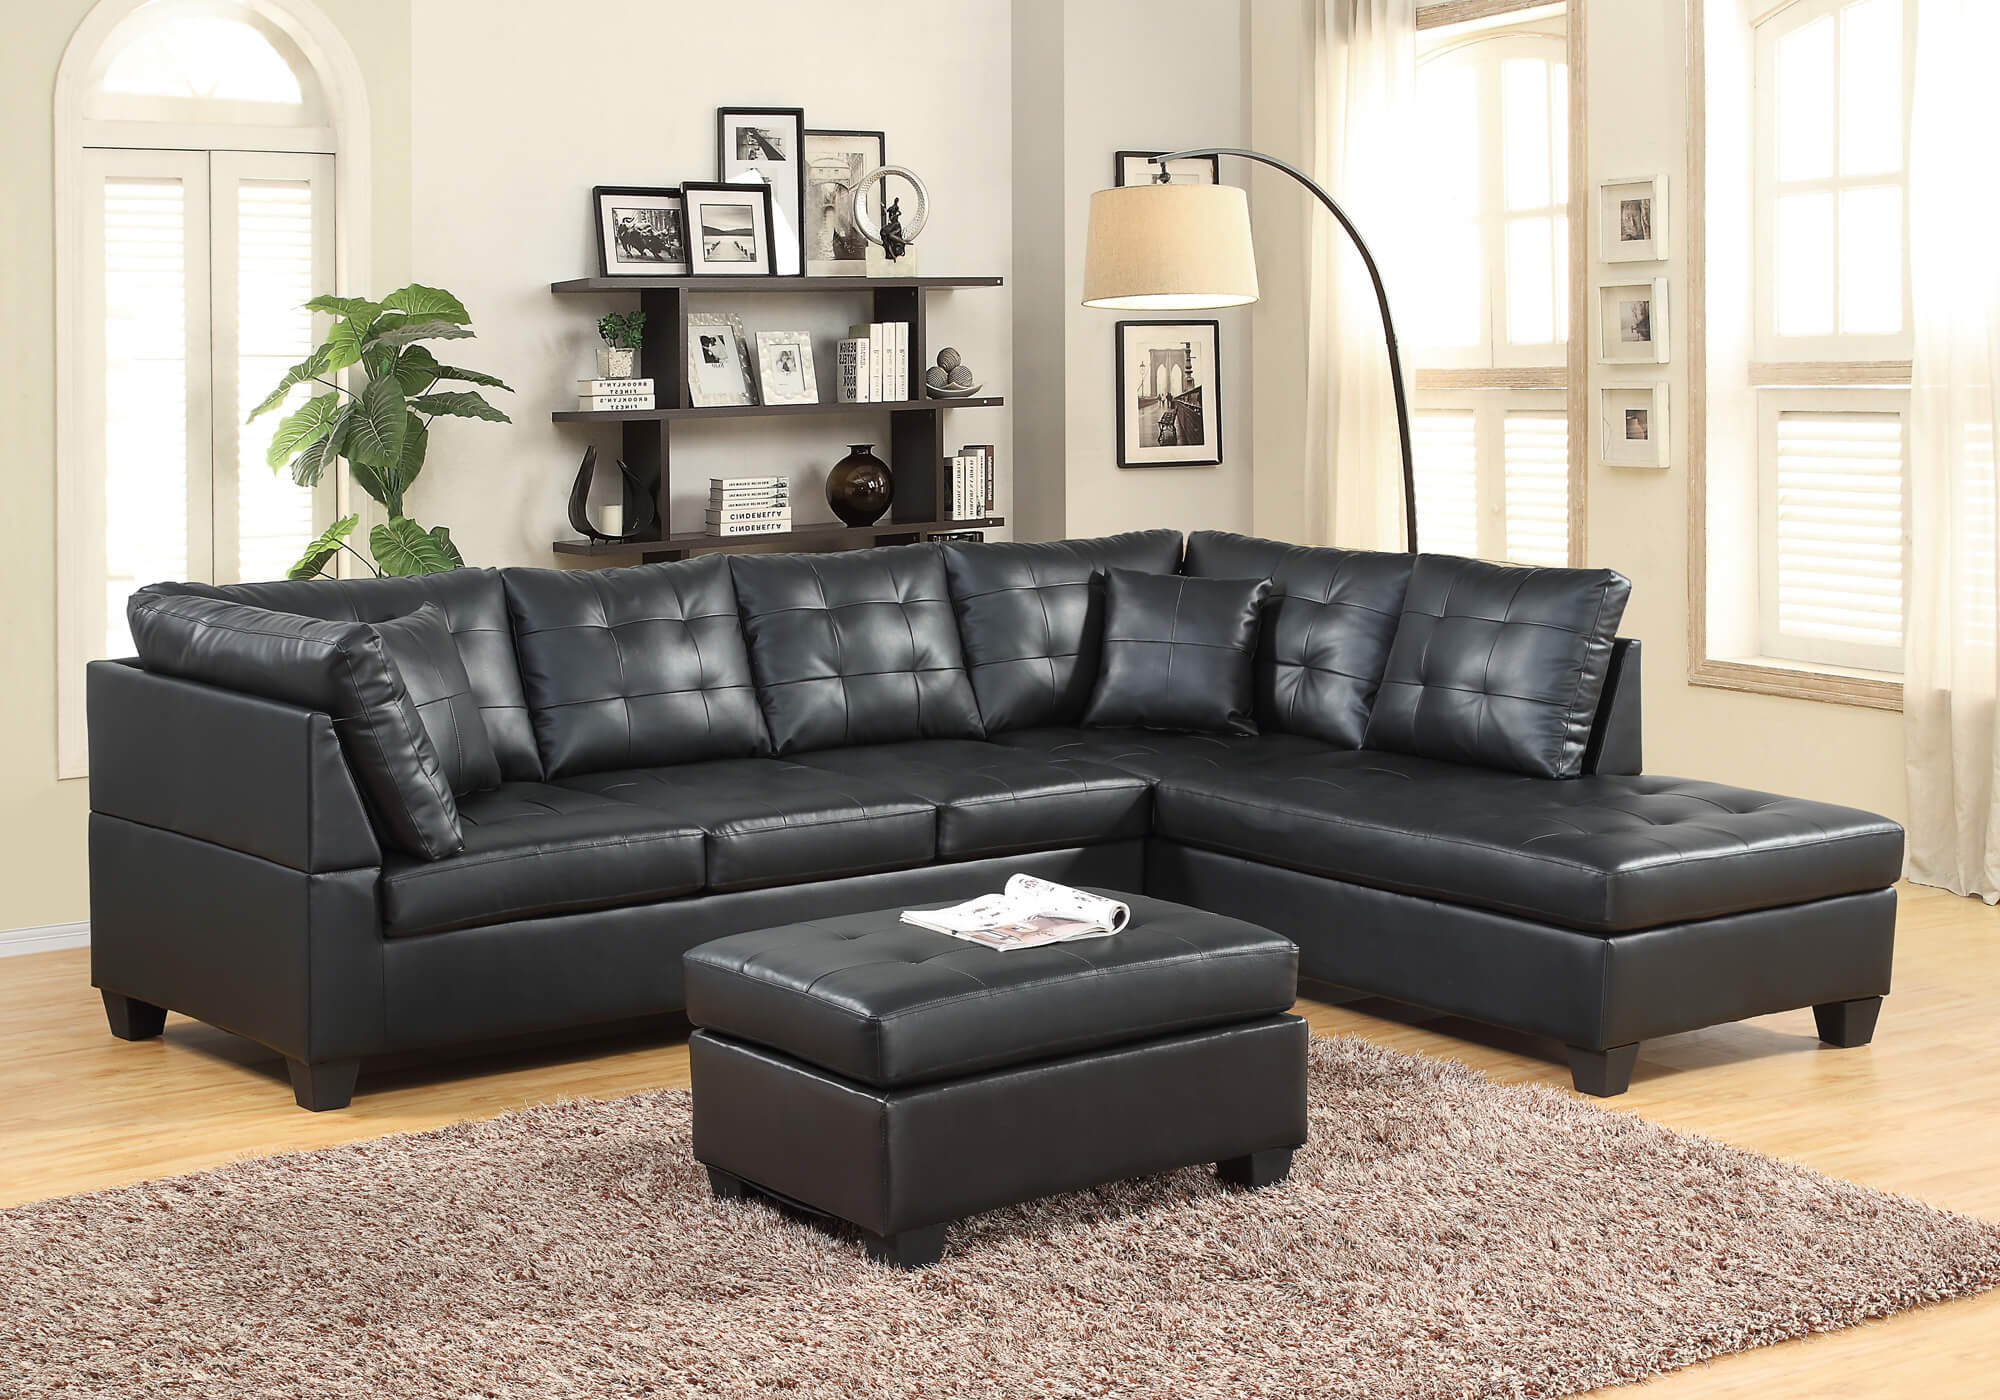 Black leather like sectiona sectional sofa sets for Living room sofa sets